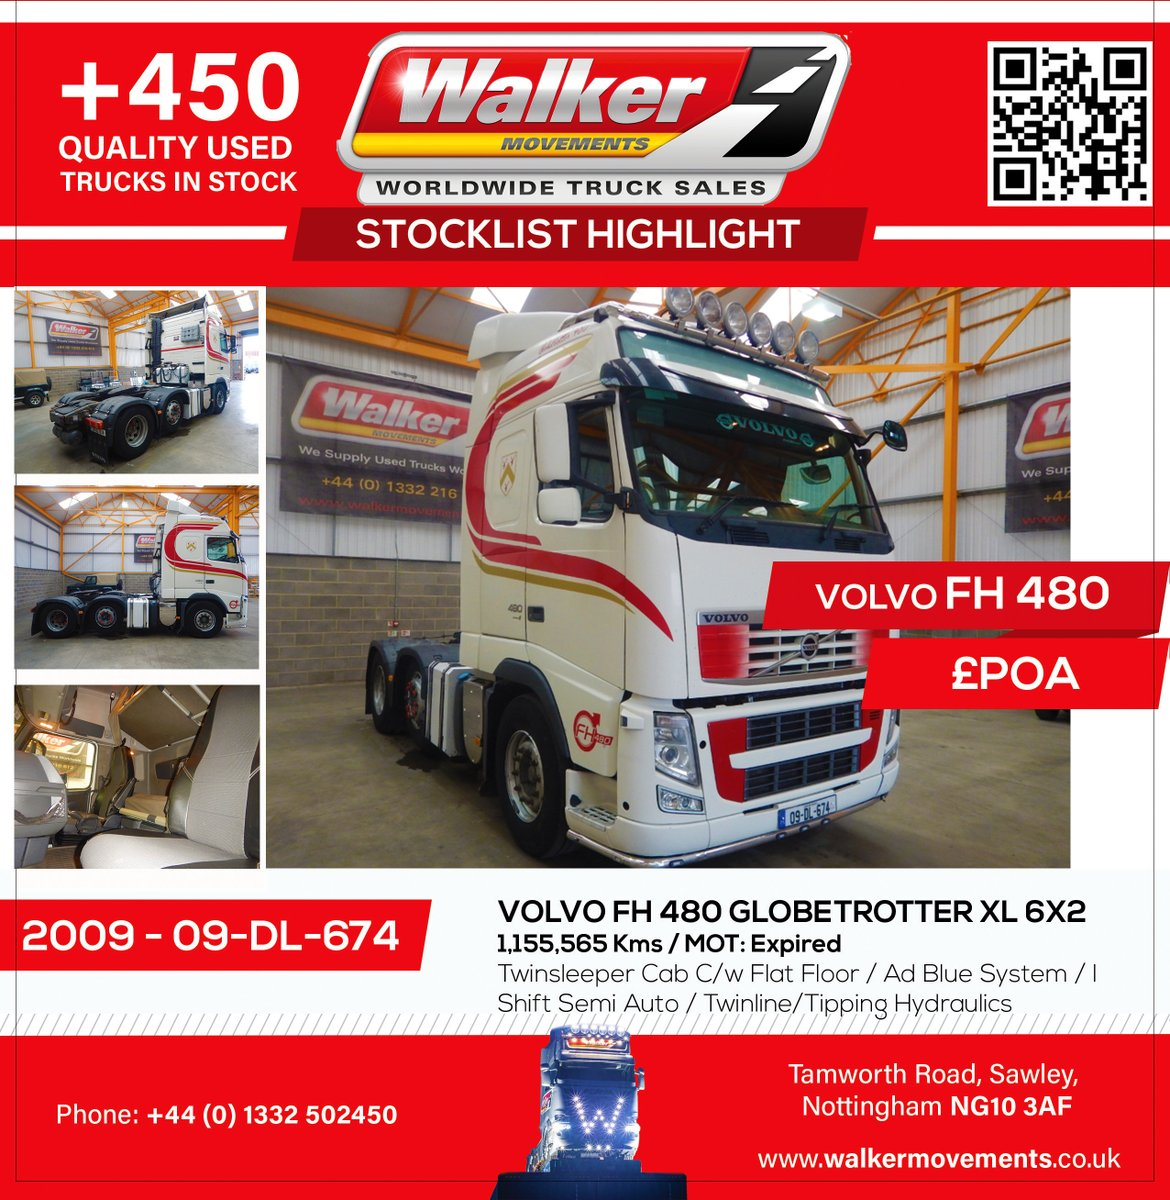 New In Stocklist For Sale: £POA VOLVO FH 480 GLOBETROTTER XL 6X2 TRACTOR UNIT - 2009 - 09-DL-674 Semi-Automatic / Twinsleeper Cab C/w Flat Floor / EU-4 Ad Blue System / Gearbox Driven Twinline/Tipping Hydraulics C/w Chassis Mounted Aluminium Oil Tank And In Cab Controls pic.twitter.com/1vgalDQXbV